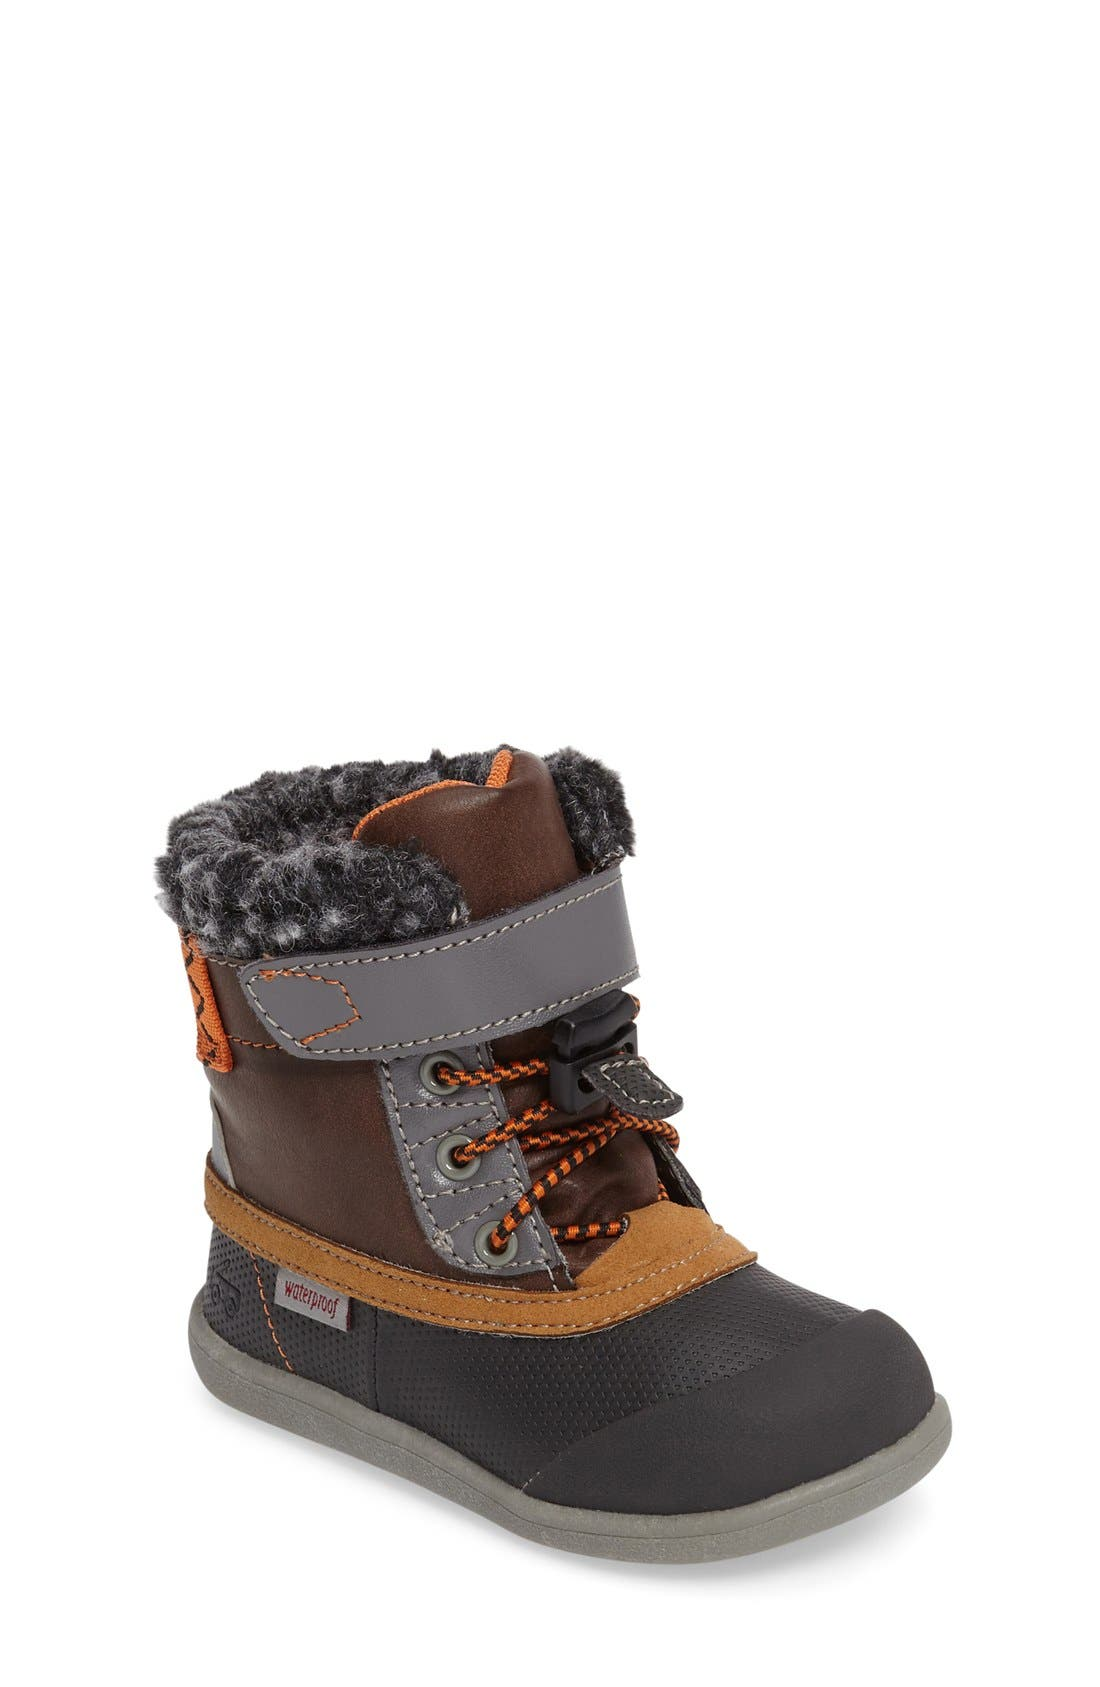 Jack Waterproof Boot,                             Main thumbnail 1, color,                             200